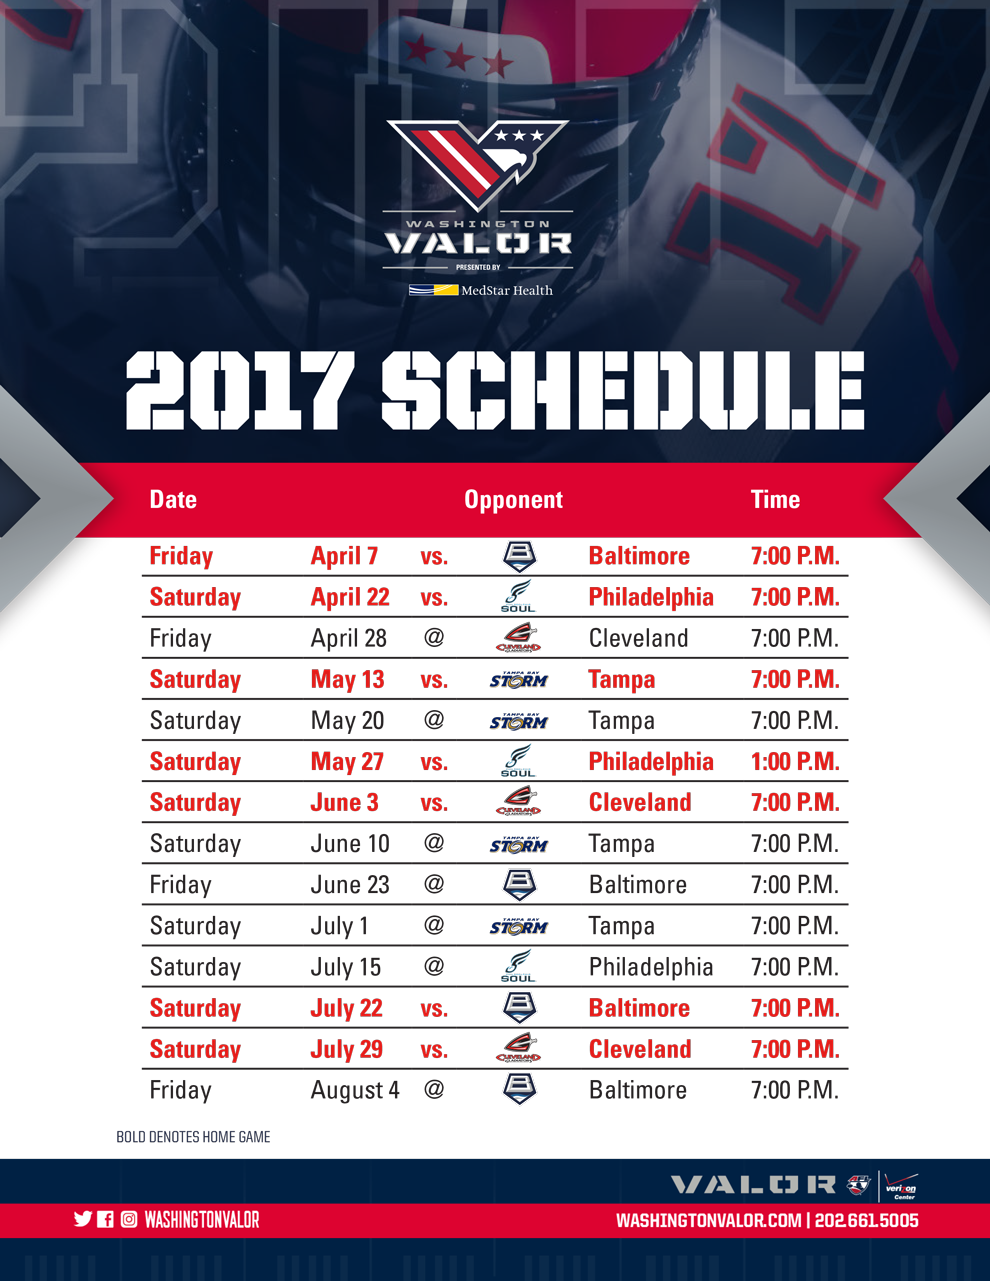 image regarding Washington Capitals Schedule Printable called 2017 Inaugural Routine Washington Valor